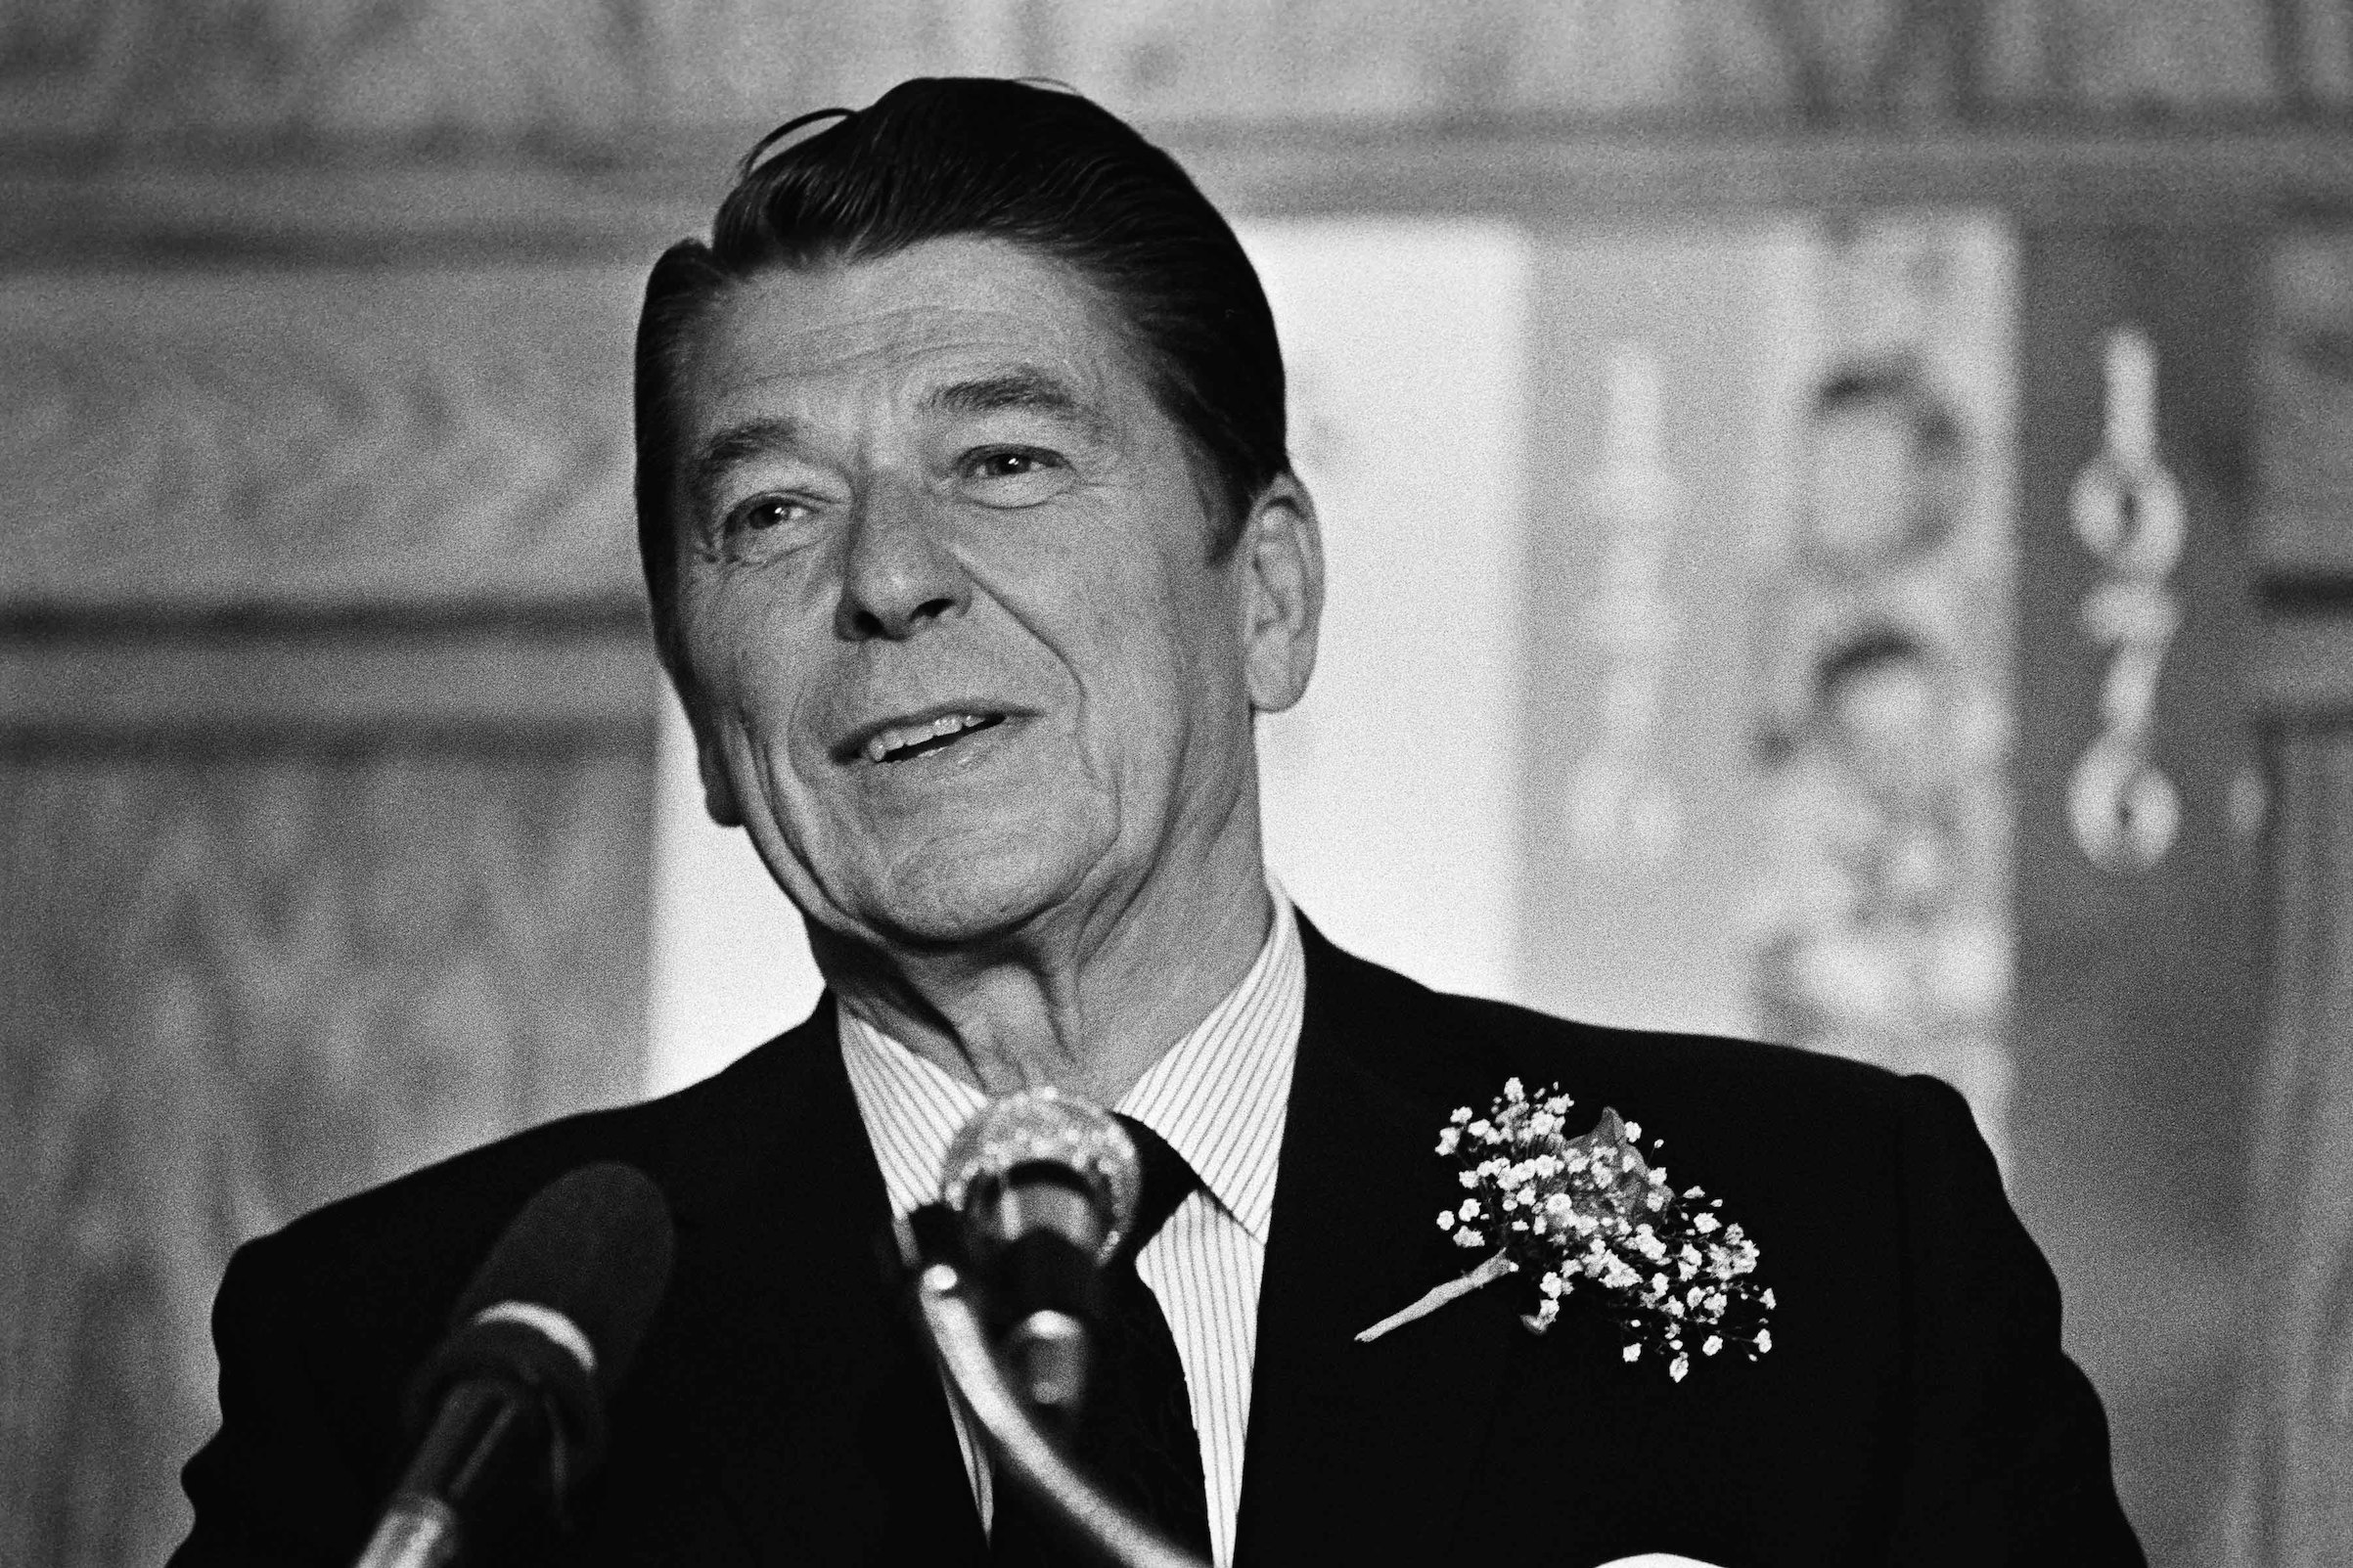 Presidential candidate Ronald Reagan gives a speech to supporters in this 1976 Los Angeles photo